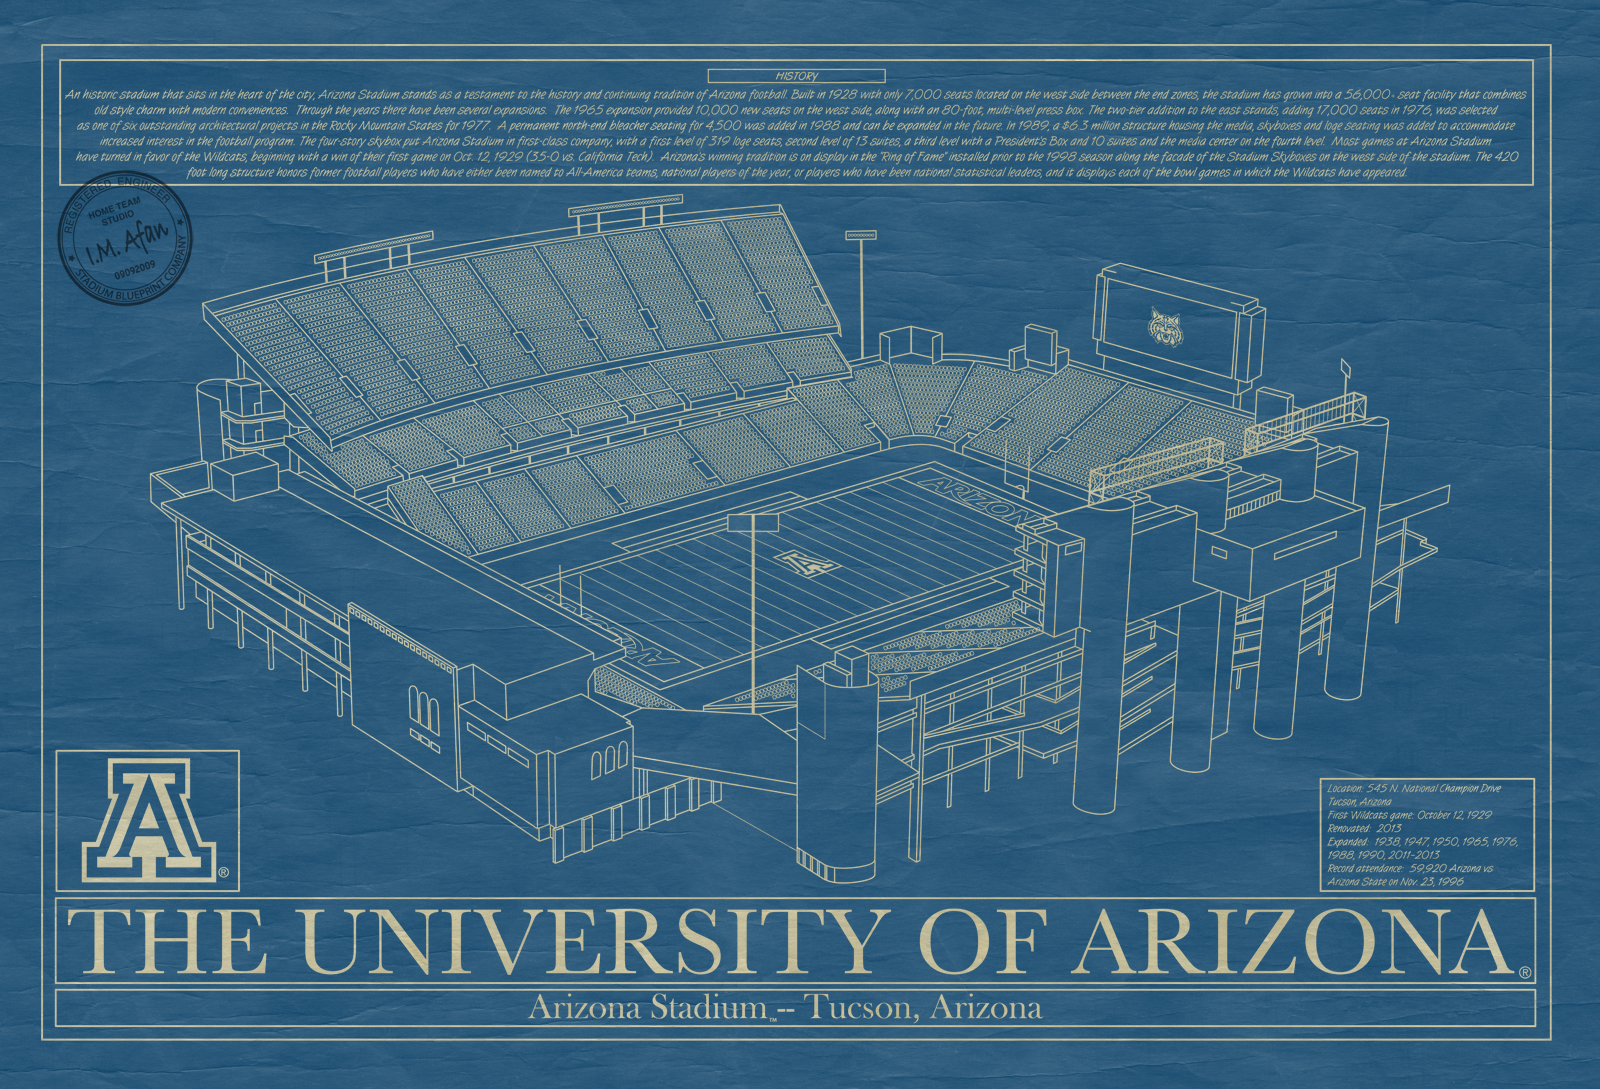 College football archives stadium blueprint company arizona arizona stadium blueprint art malvernweather Image collections